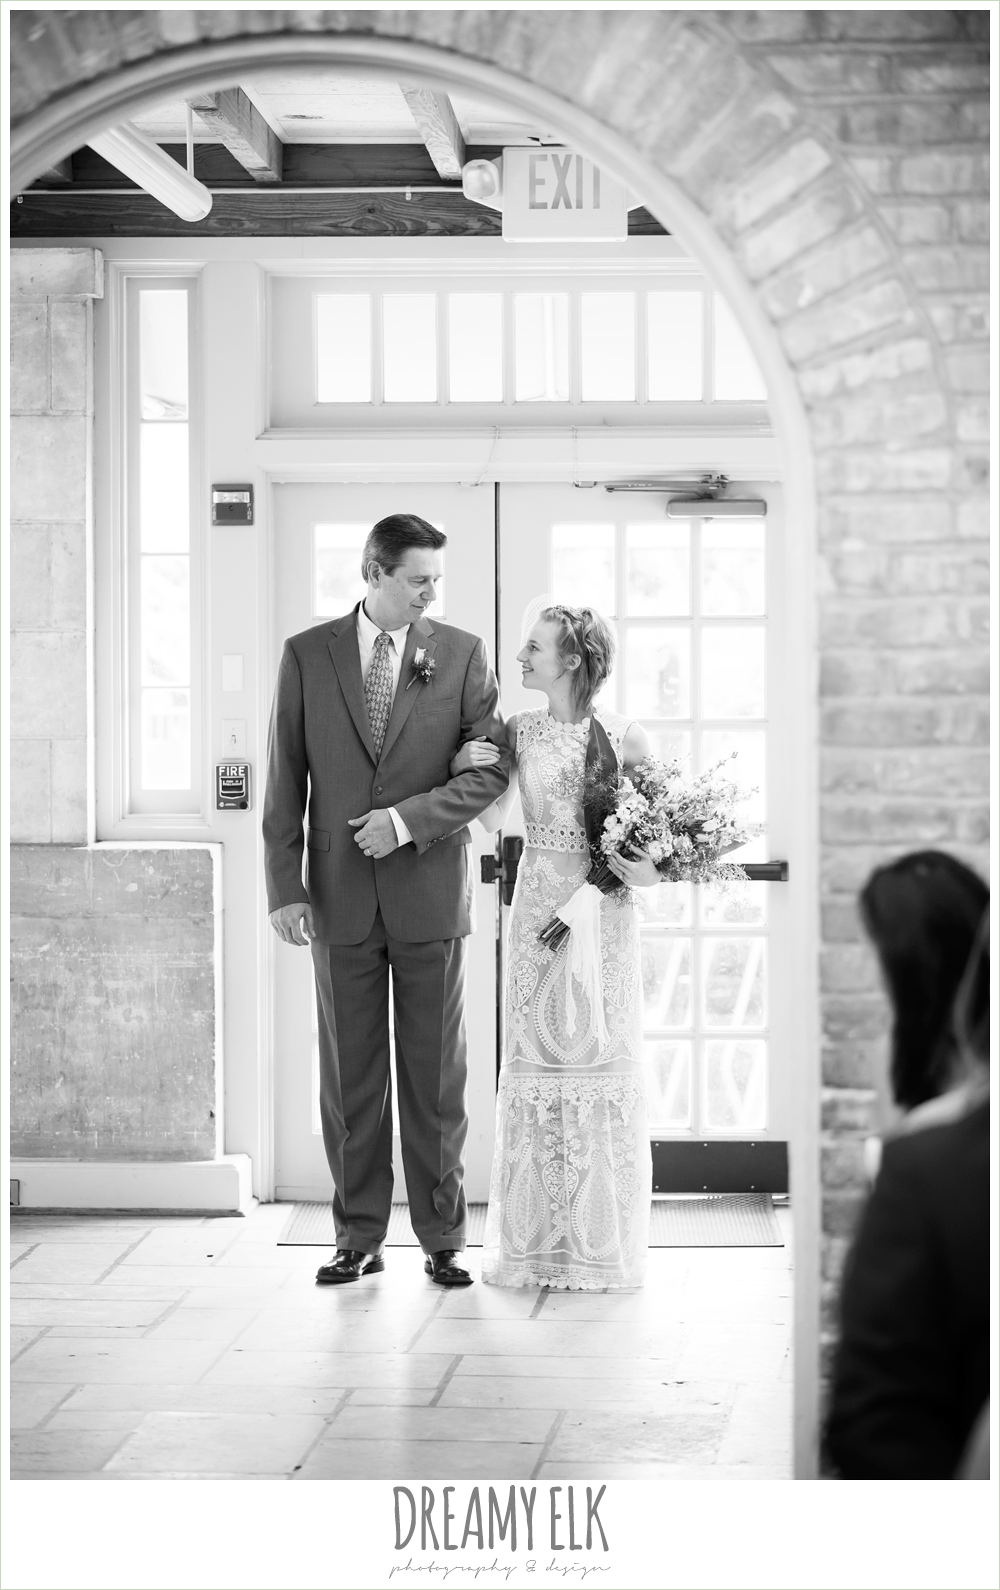 bride and dad walking down the aisle, spring wedding, austin, texas {dreamy elk photography and design}